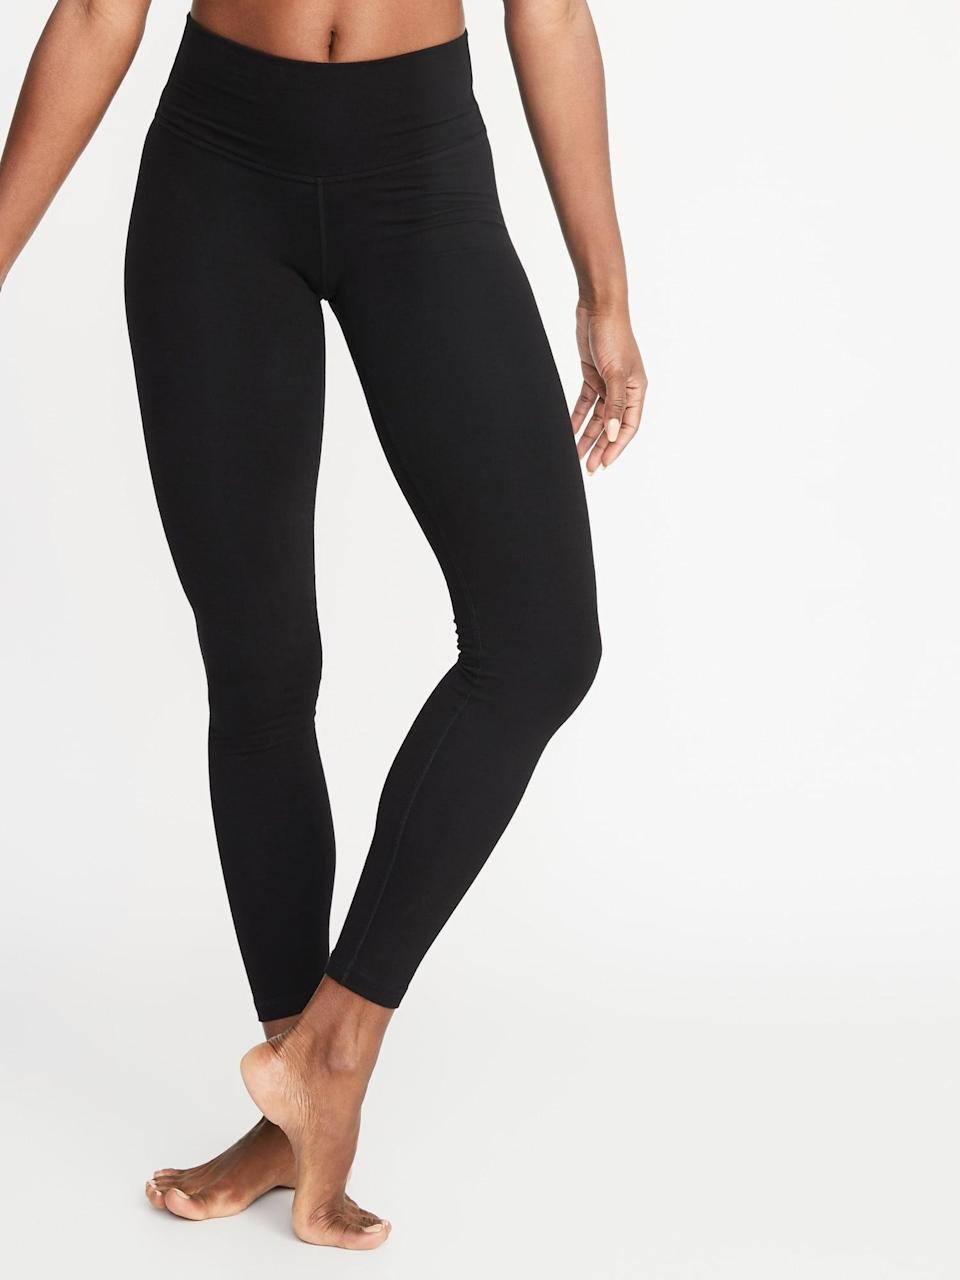 <p>You can do just about anything in these <span>Old Navy High-Waisted Balance Yoga Leggings</span> ($18, originally $25).</p>